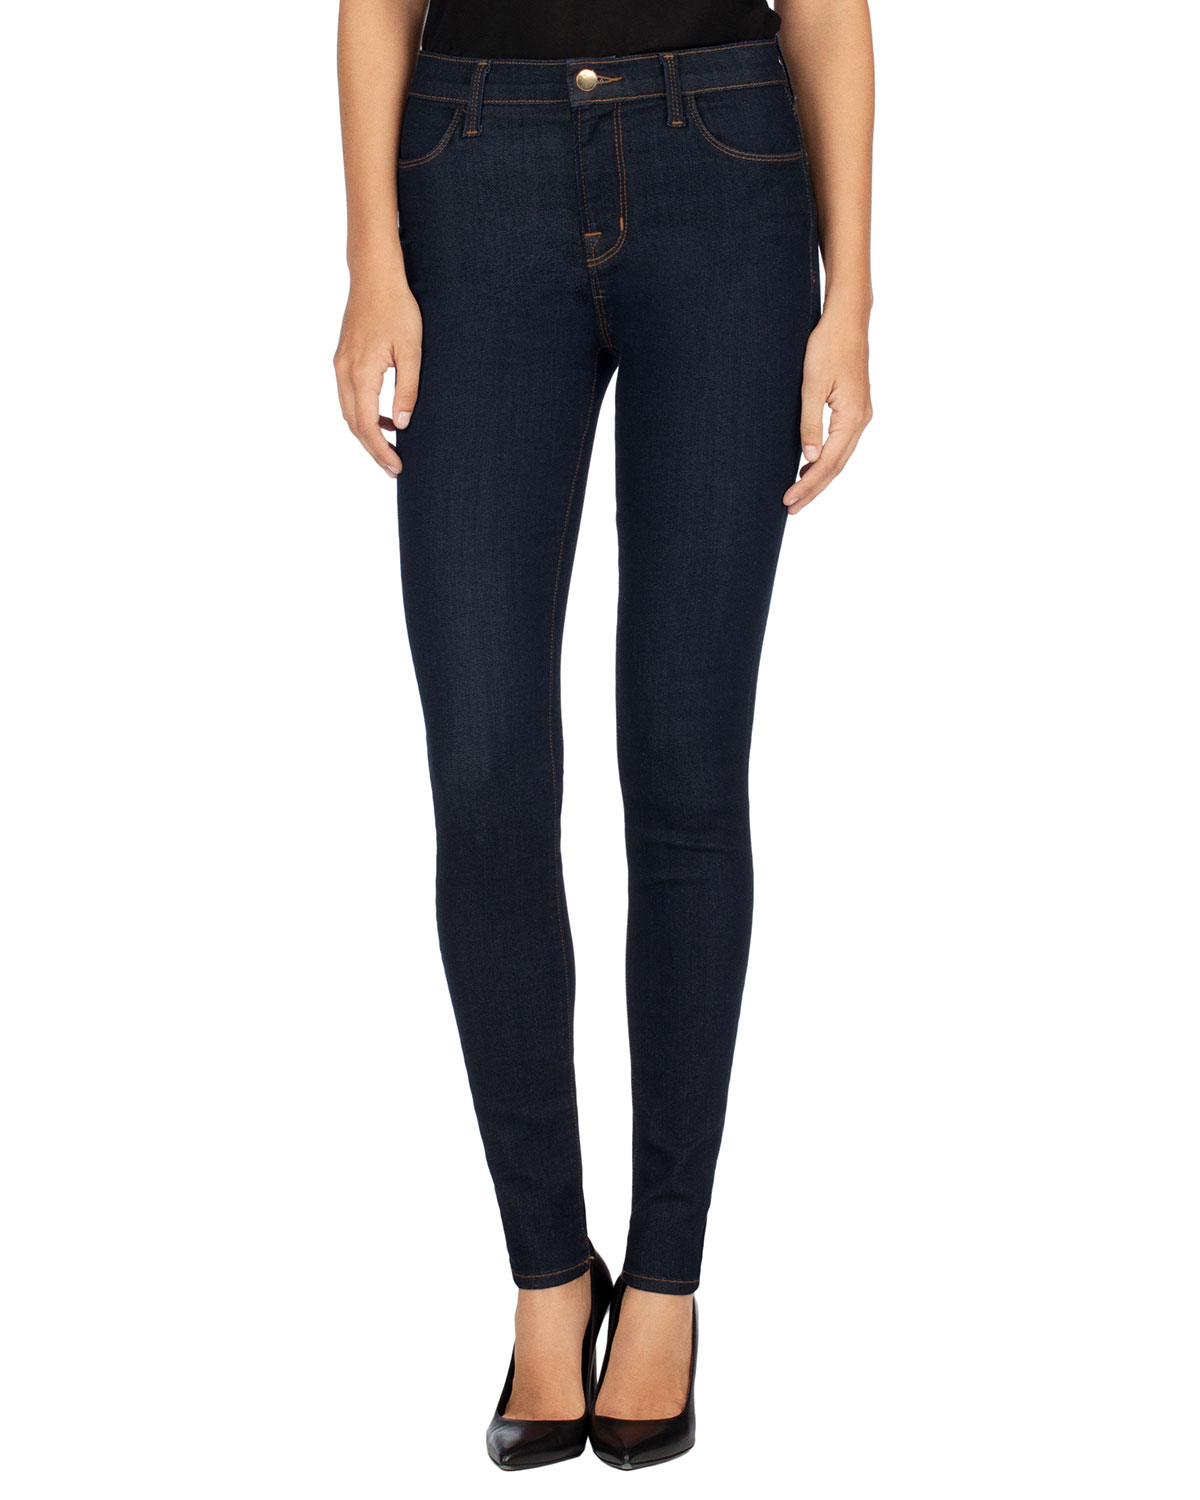 Maria High-Rise Super-Skinny Jeans, After Dark, Size: 24 - J Brand Jeans